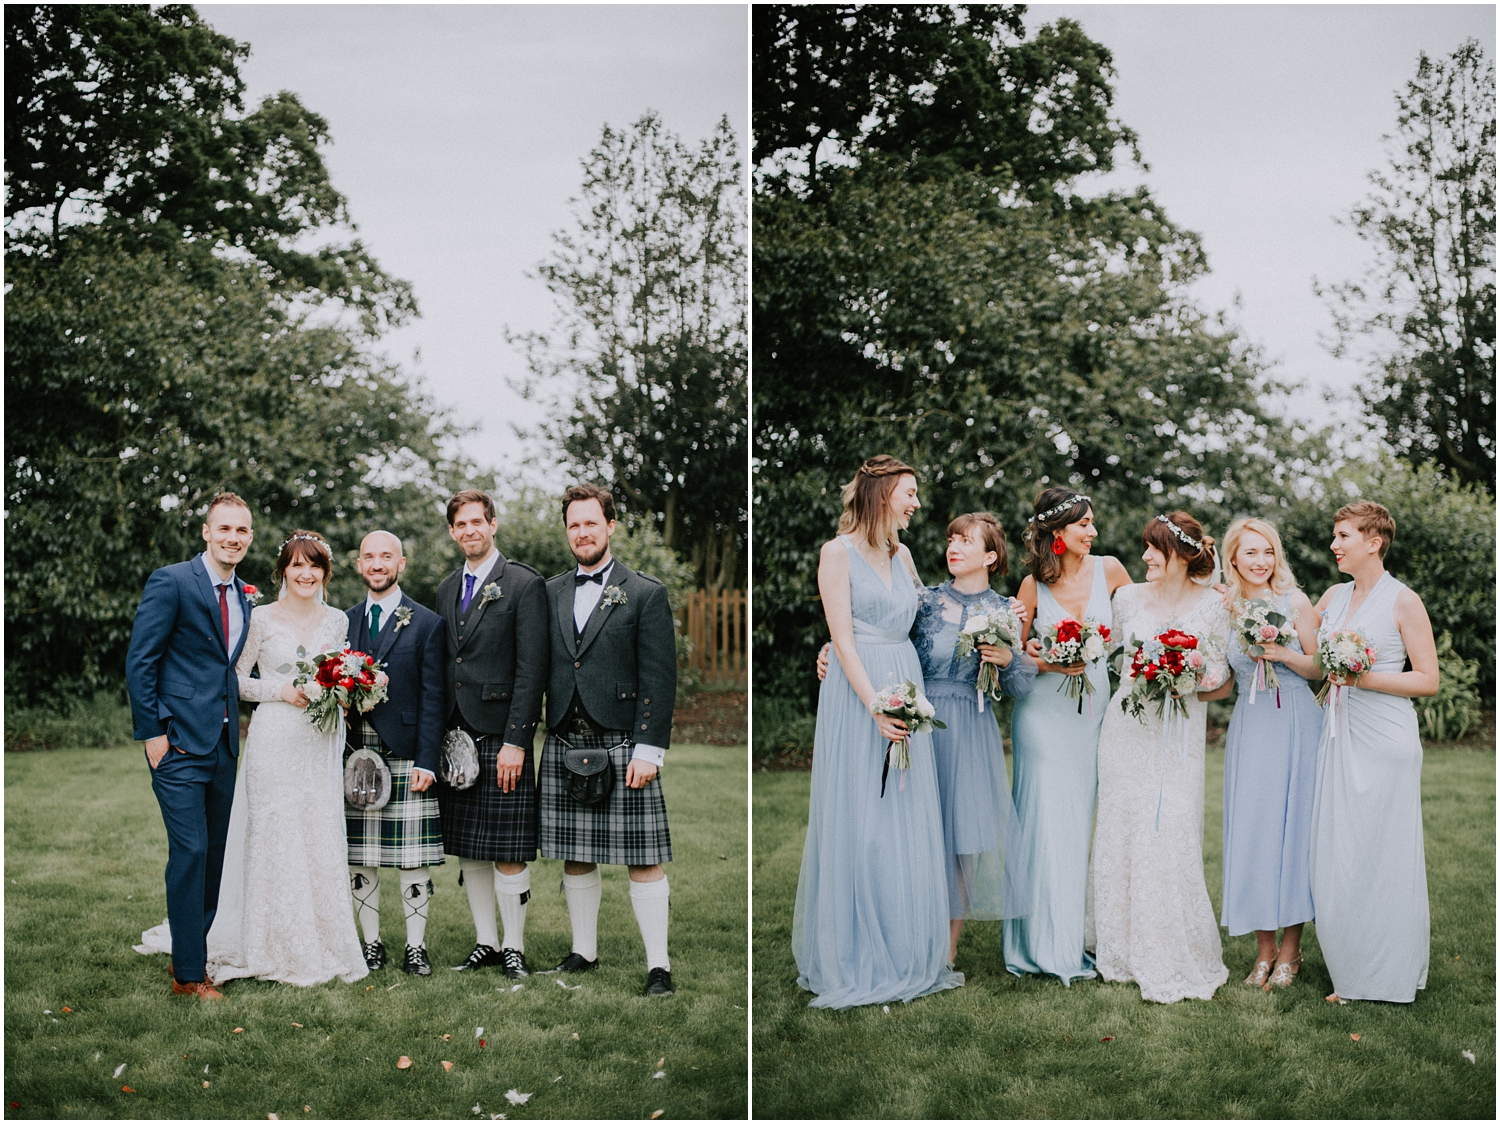 Boho style wedding in Scotland